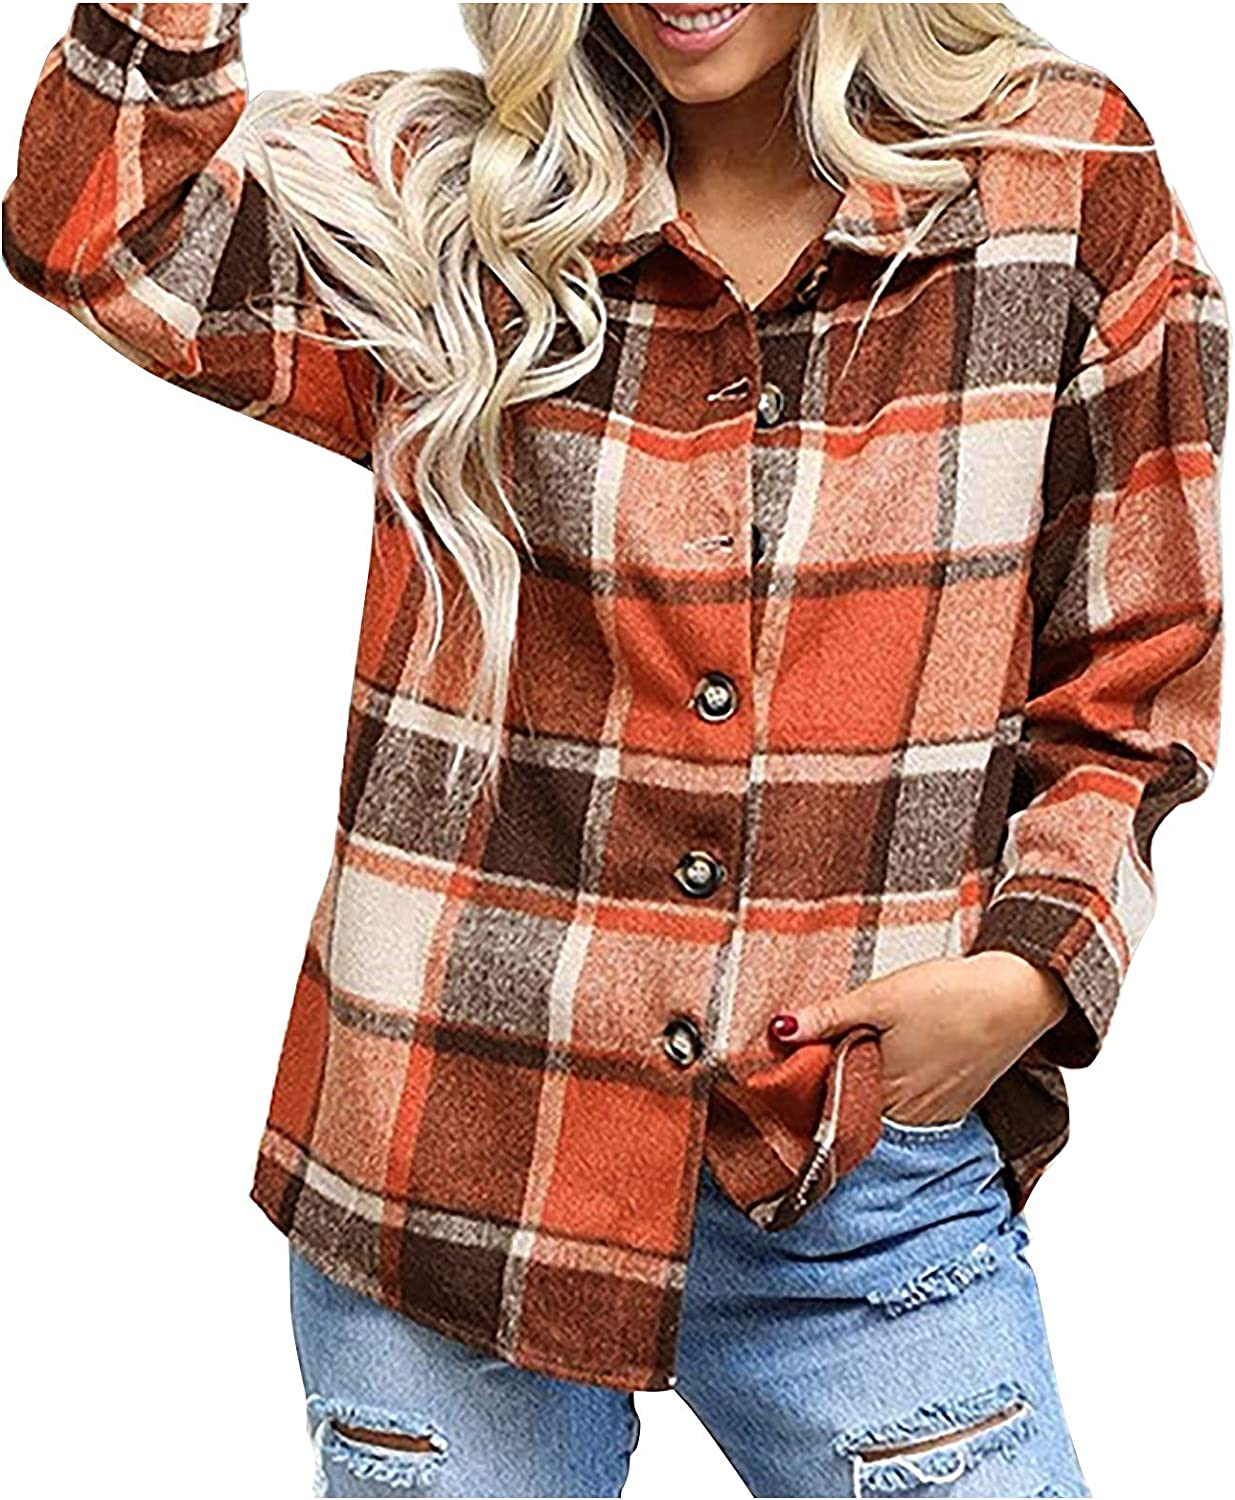 Womens Plaid Lapel Button Down Shirt Coat Plus Size Baggy Turn Down Collar Long Sleeve Blouse Overcoat Outwear